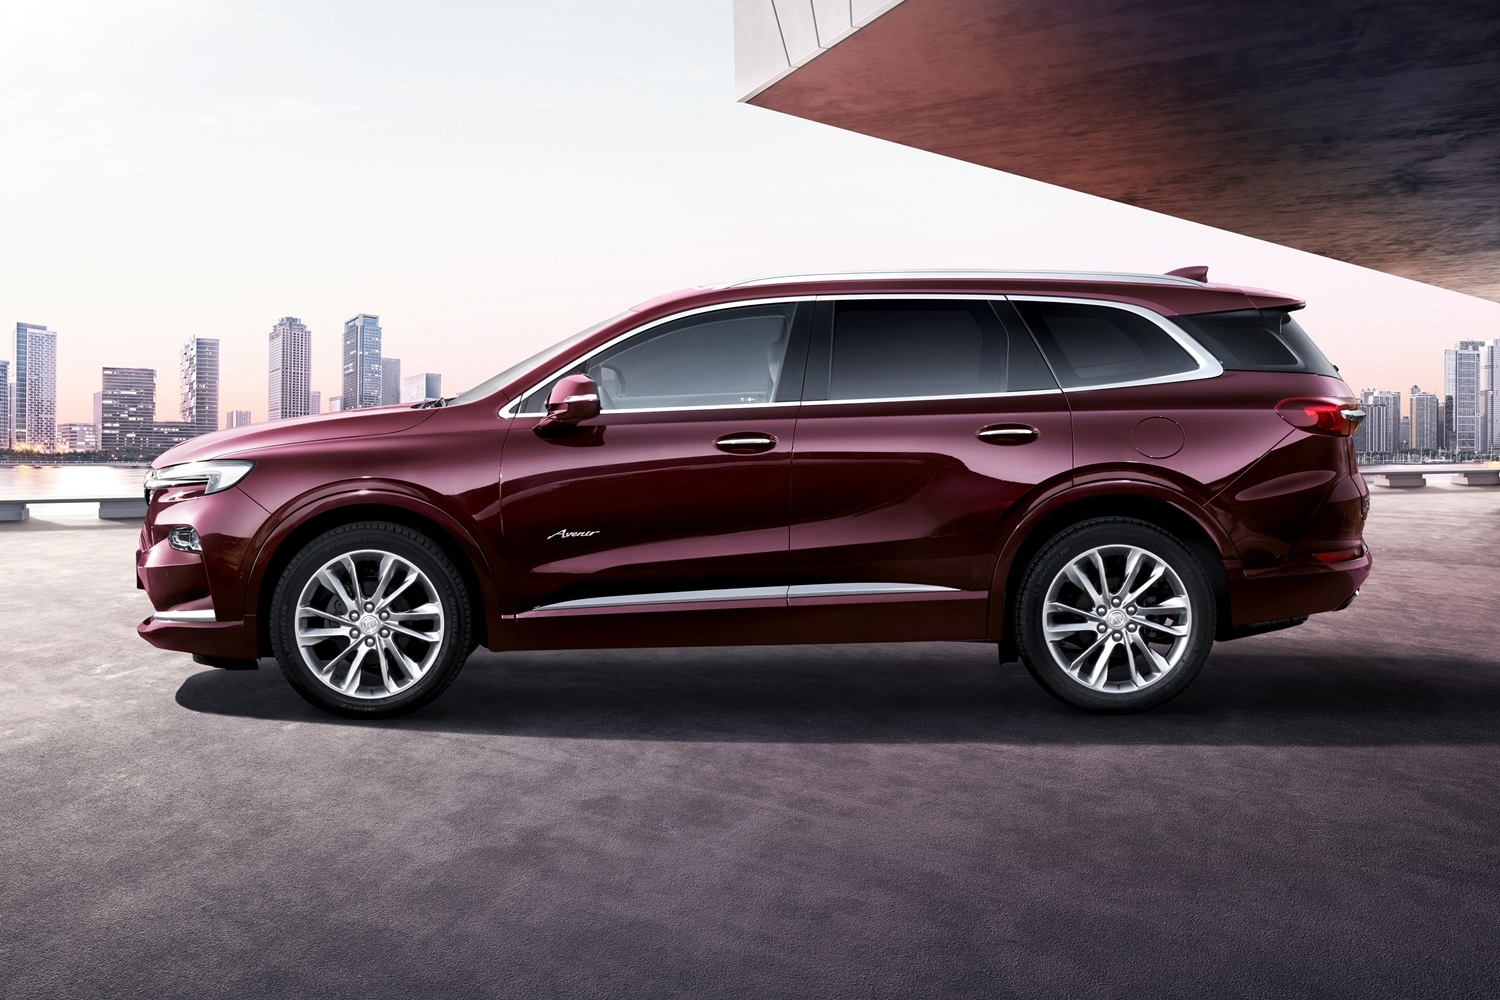 Gm Shows All-New China-Spec Buick Enclave Avenir | Gm Authority Does The New 2022 Buick Enclave Avenir Have Heads Up Display